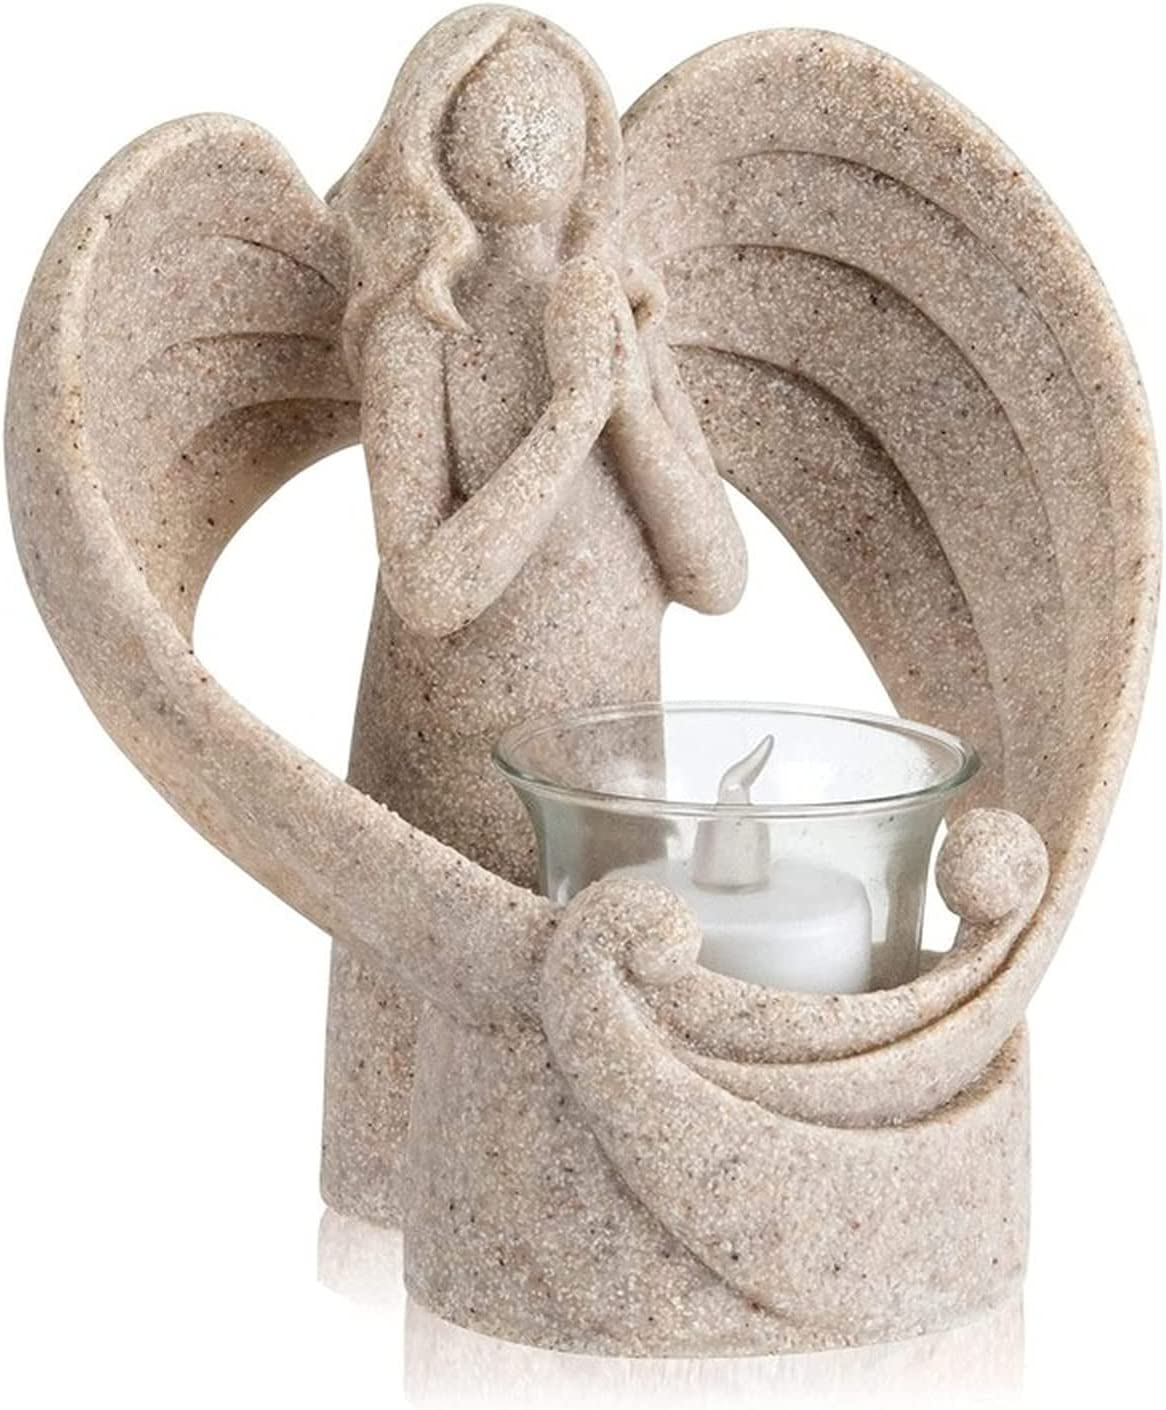 JONJUMP Angel Candlestick Resin Candle Holder Statue Popularity Price reduction